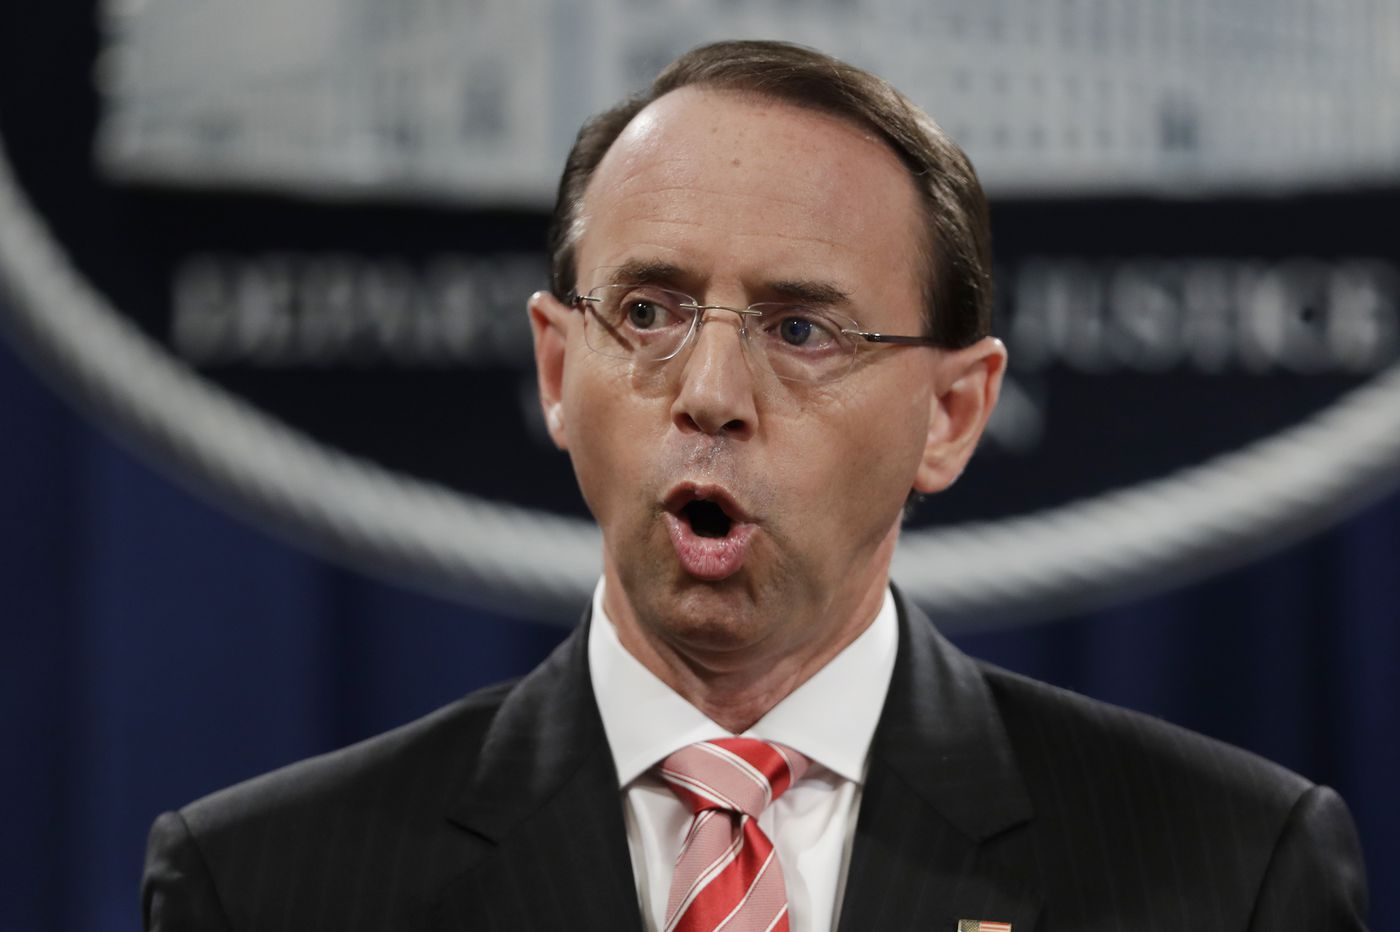 Deputy Attorney General Rod Rosenstein to leave post at Justice Department